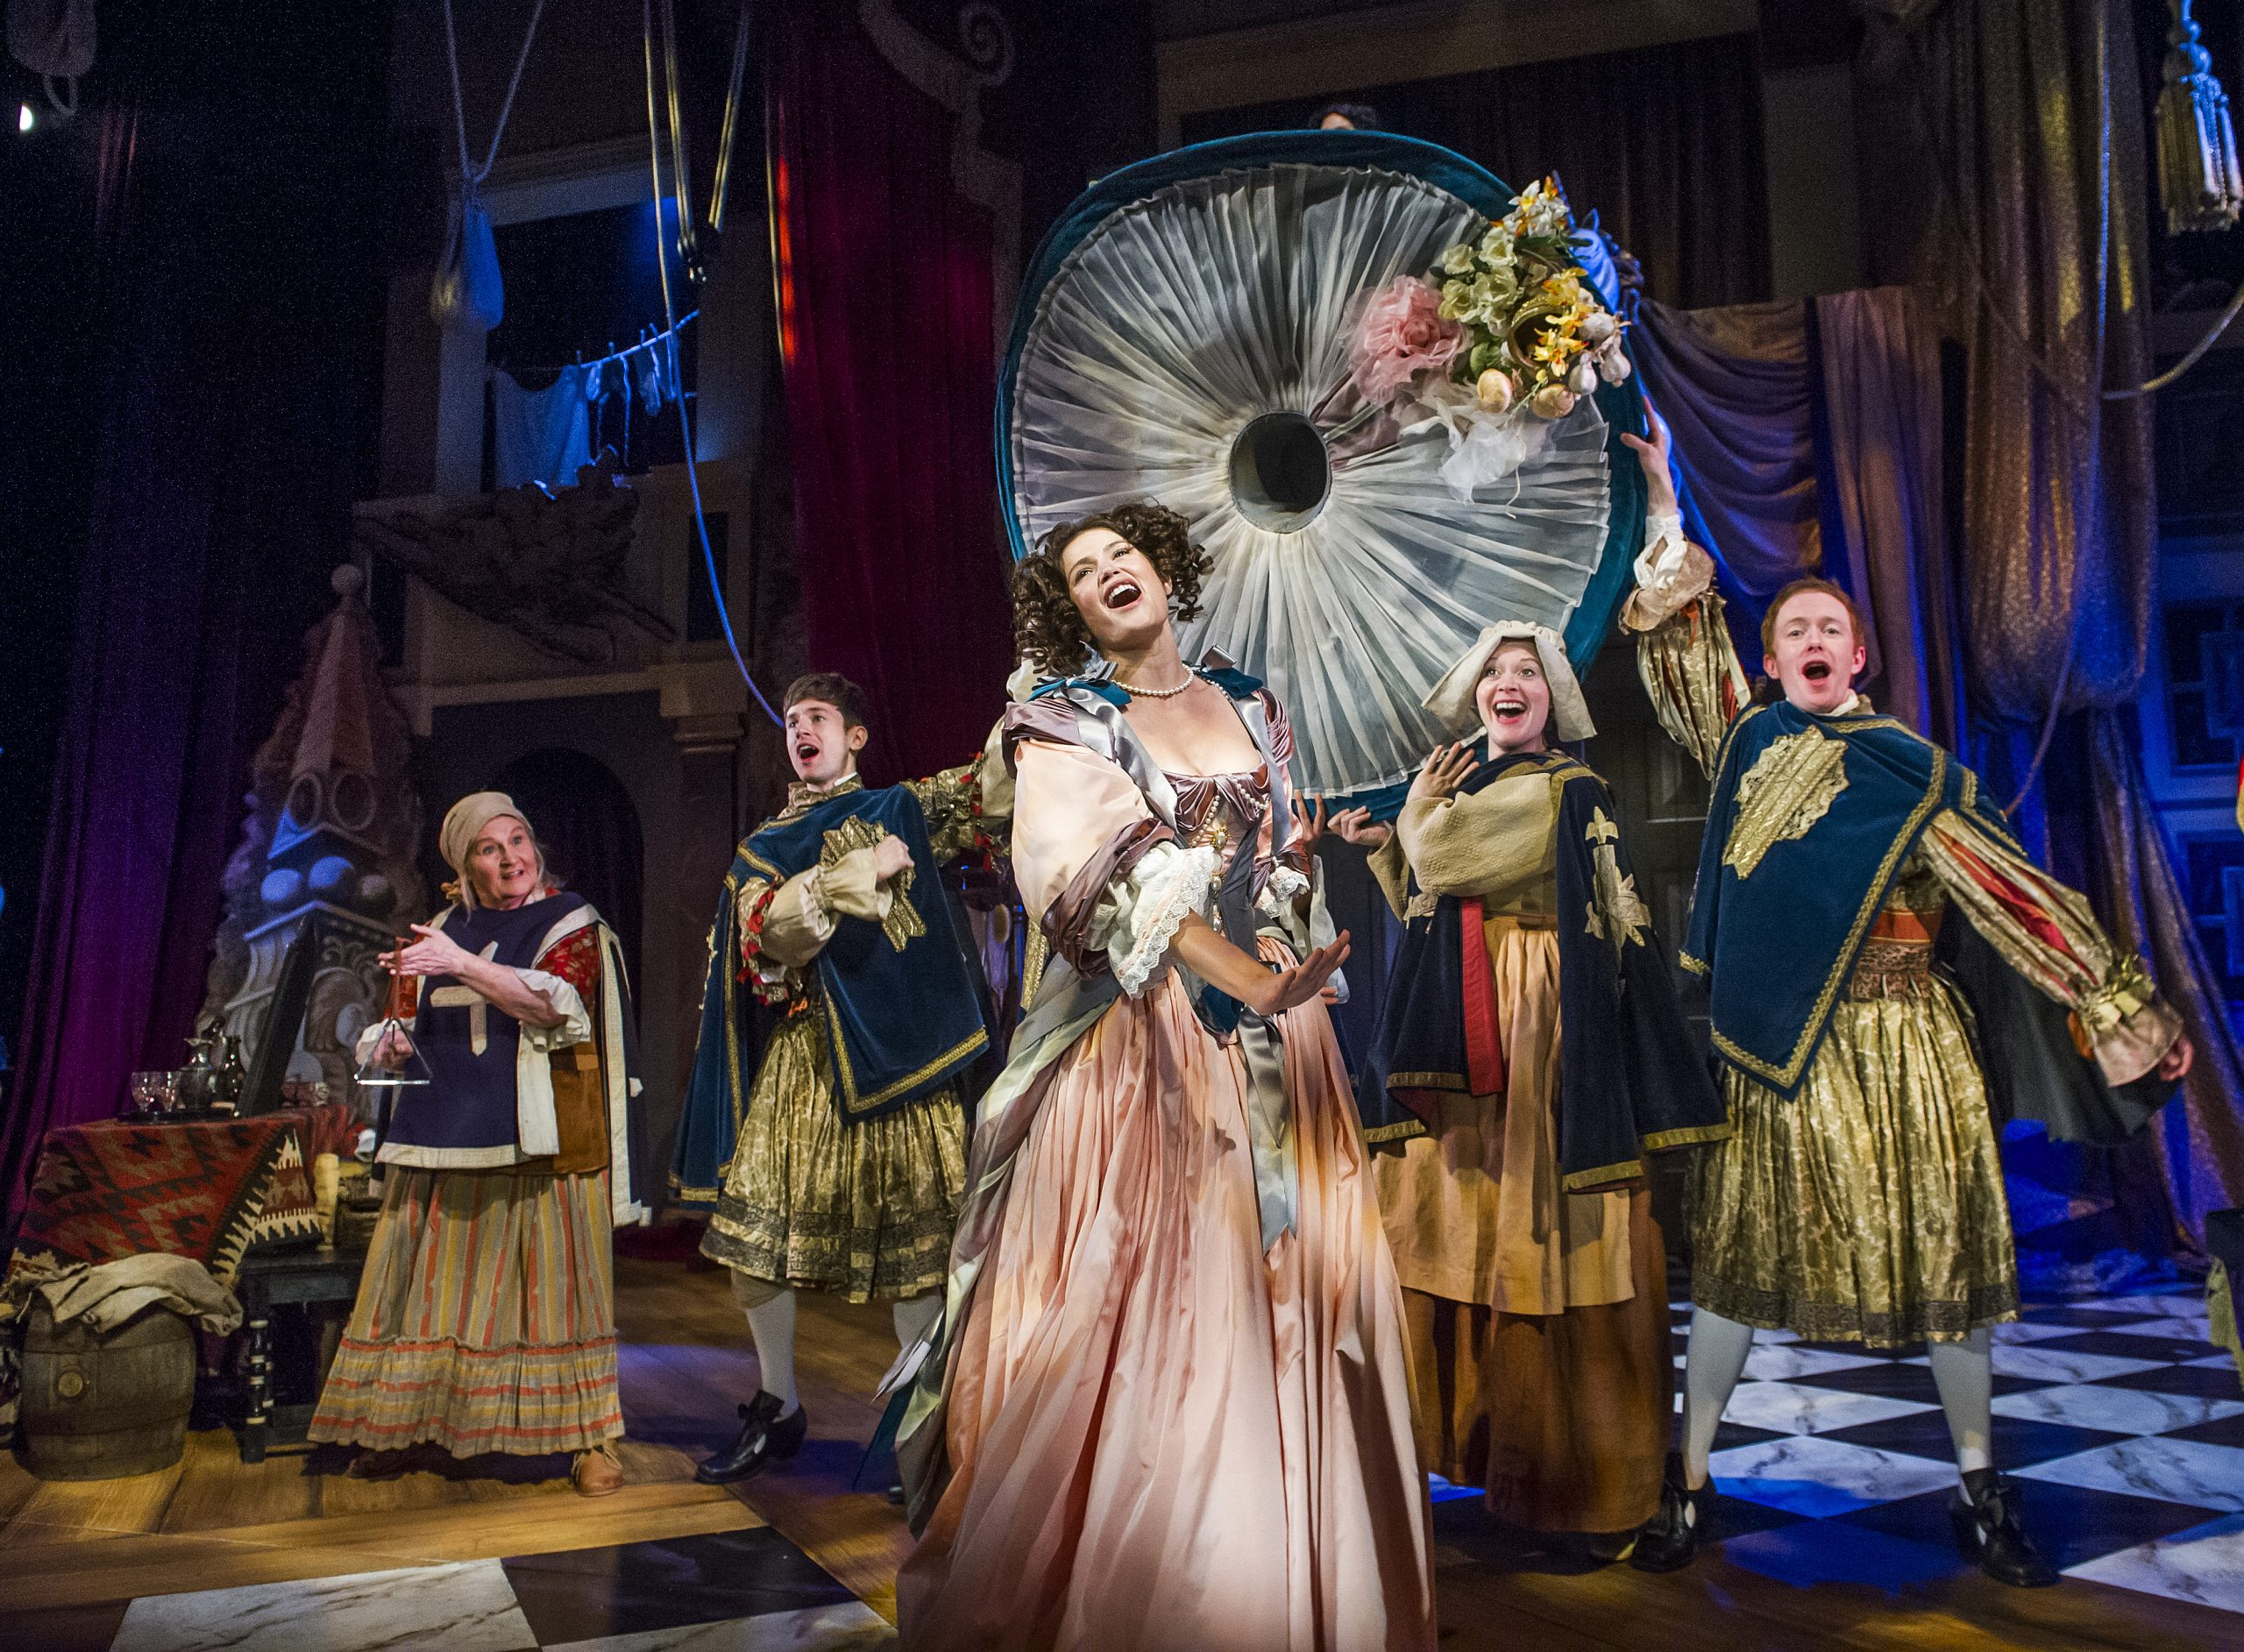 A scene from Nell Gwynn by Jessica Swale @ Apollo Theatre. Directed by Christopher Luscombe. (Opening 12-02-16) ©Tristram Kenton 02/16 (3 Raveley Street, LONDON NW5 2HX TEL 0207 267 5550  Mob 07973 617 355)email: tristram@tristramkenton.com